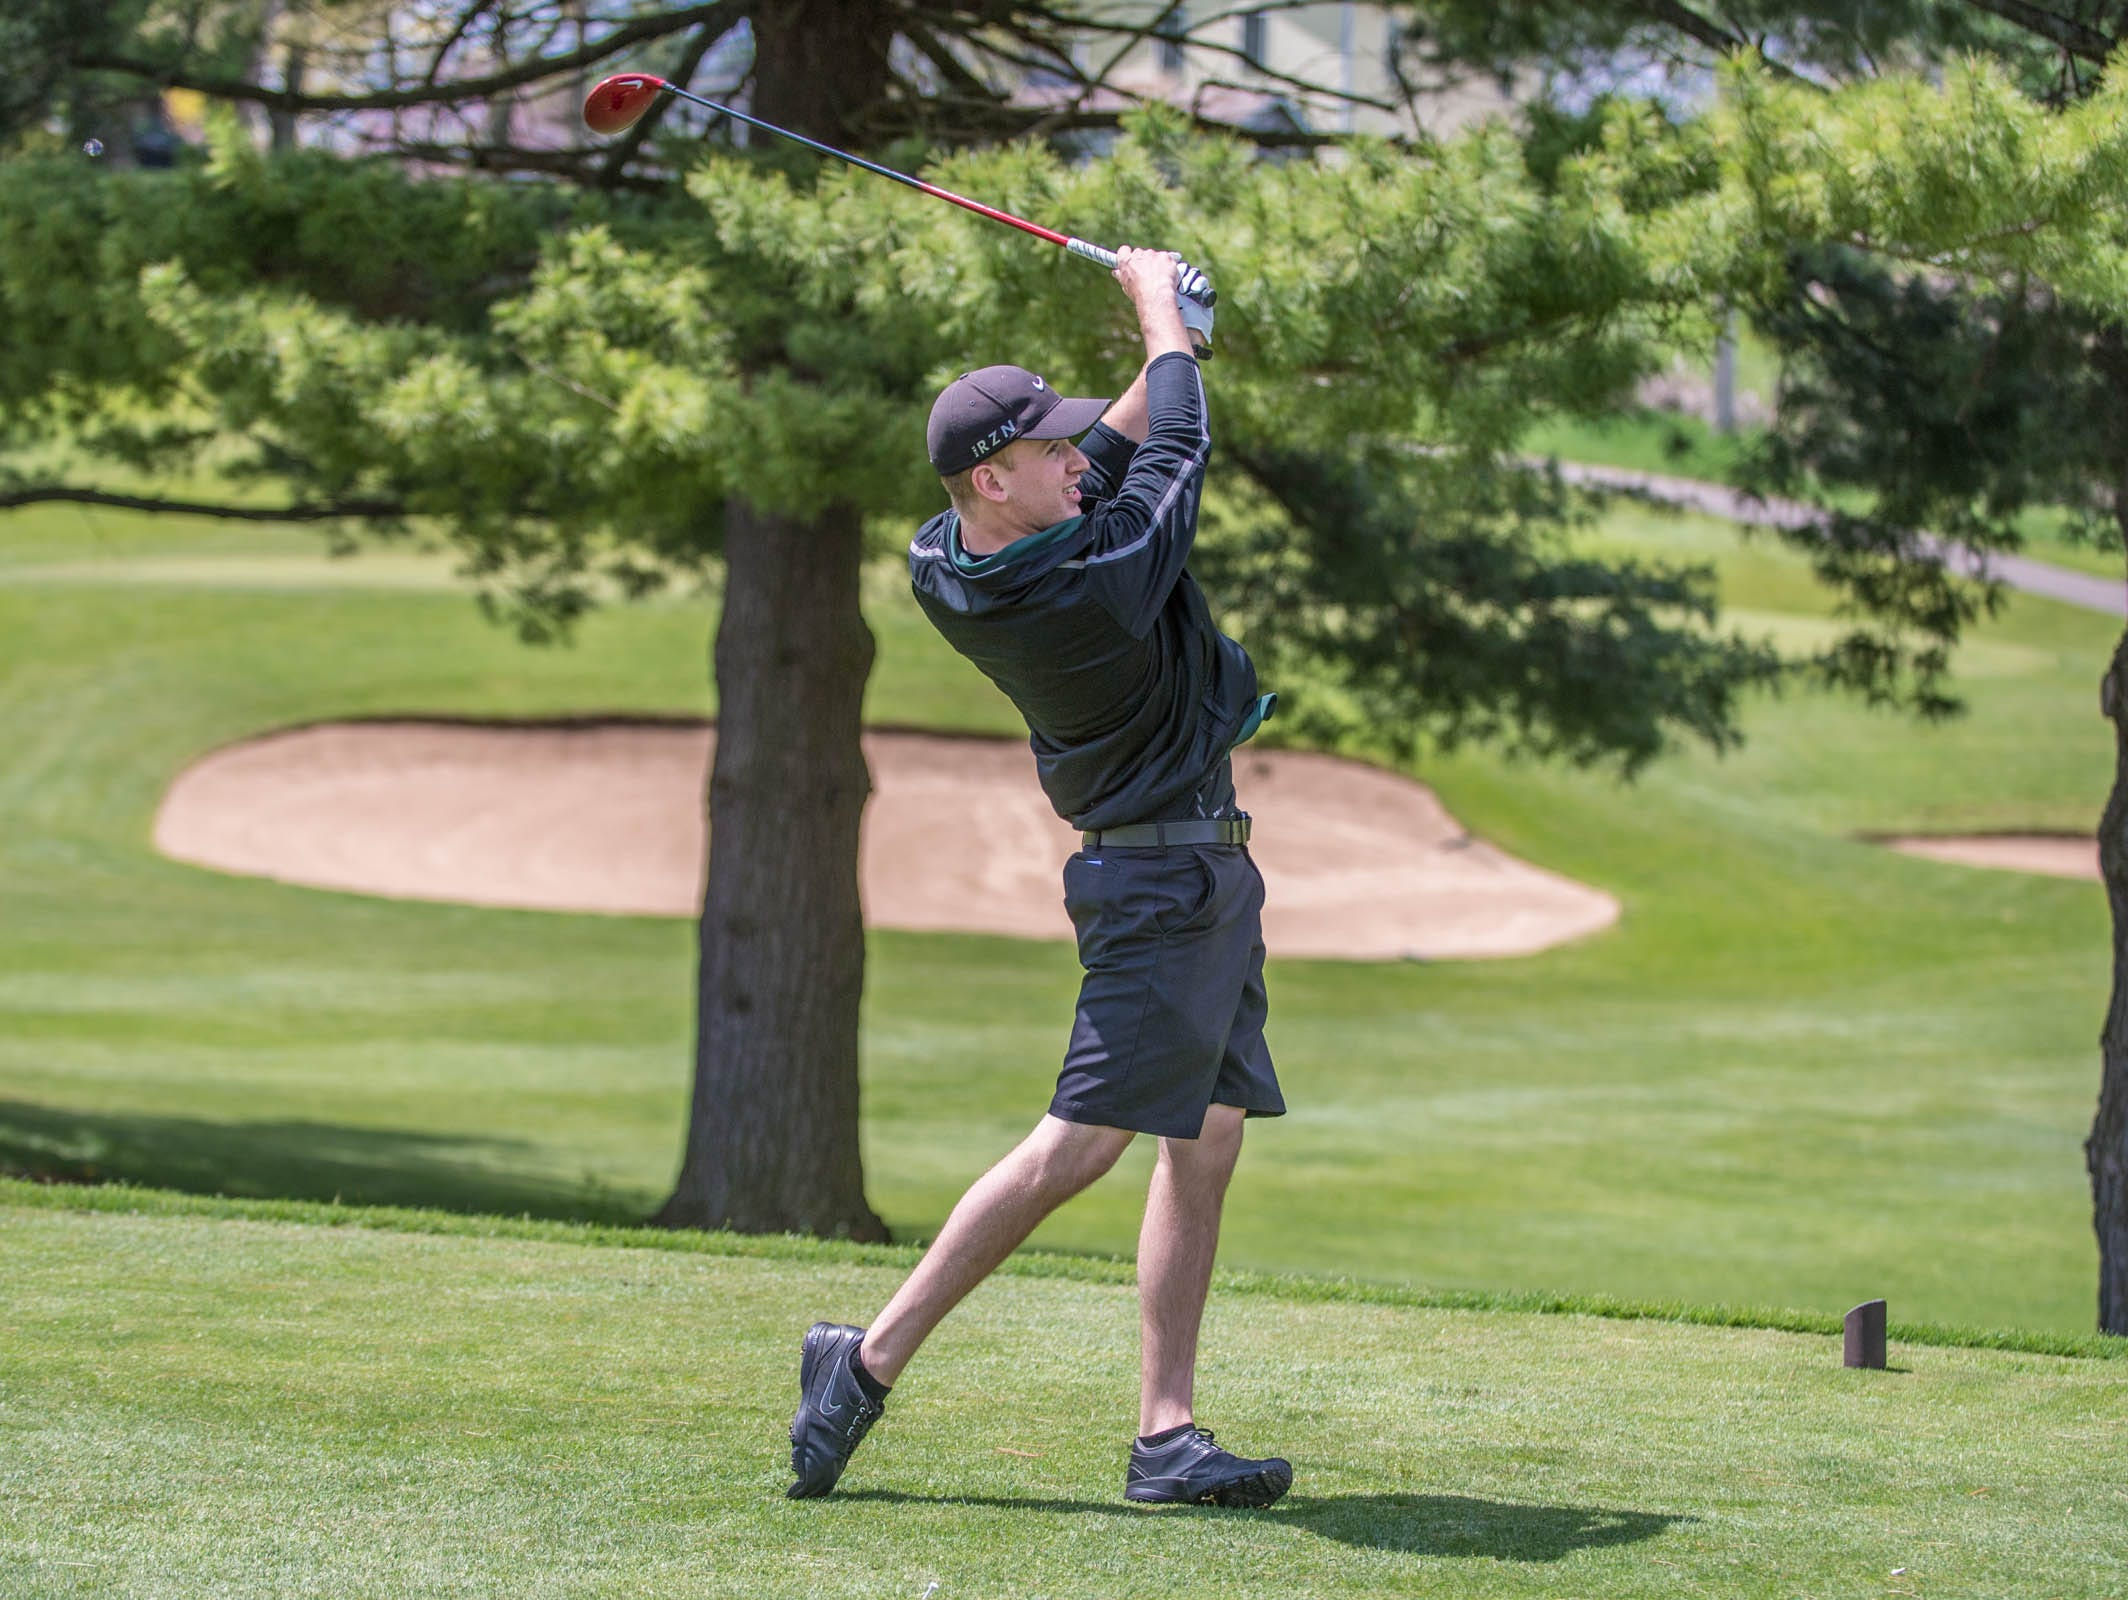 Pennfield senior Chase Williamson hits his drive during All City High School Golf at Riverside Golf Club on Friday.